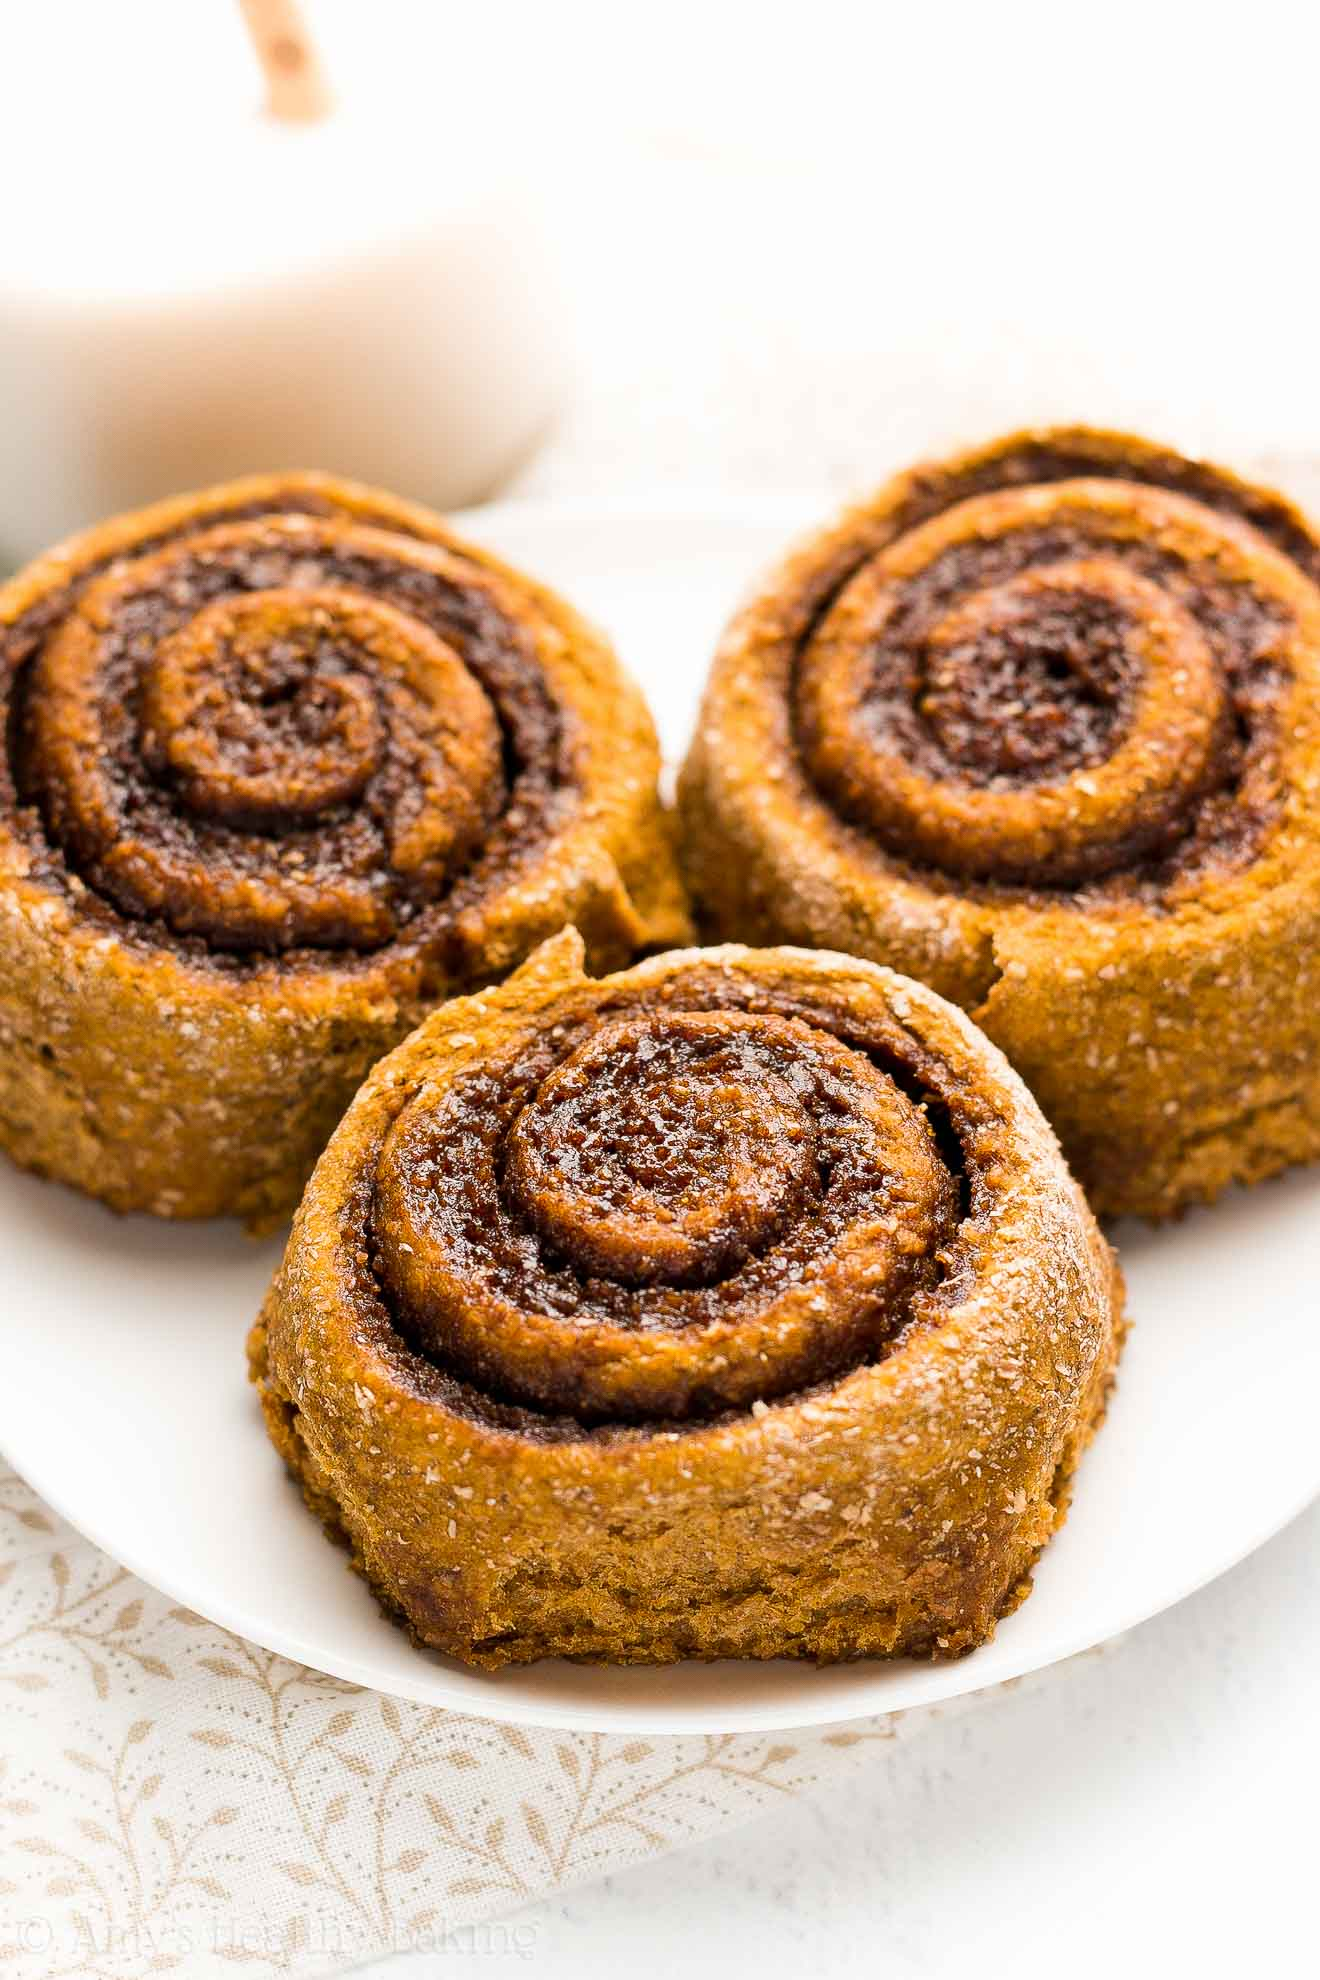 {HEALTHY!} Pumpkin Spice Latte Cinnamon Rolls -- 109 calories! They taste just like a Starbucks PSL! Perfectly tender, sweet gooey filling, surprisingly simple to make... This recipe is a TOTAL KEEPER! ad @redstaryeast